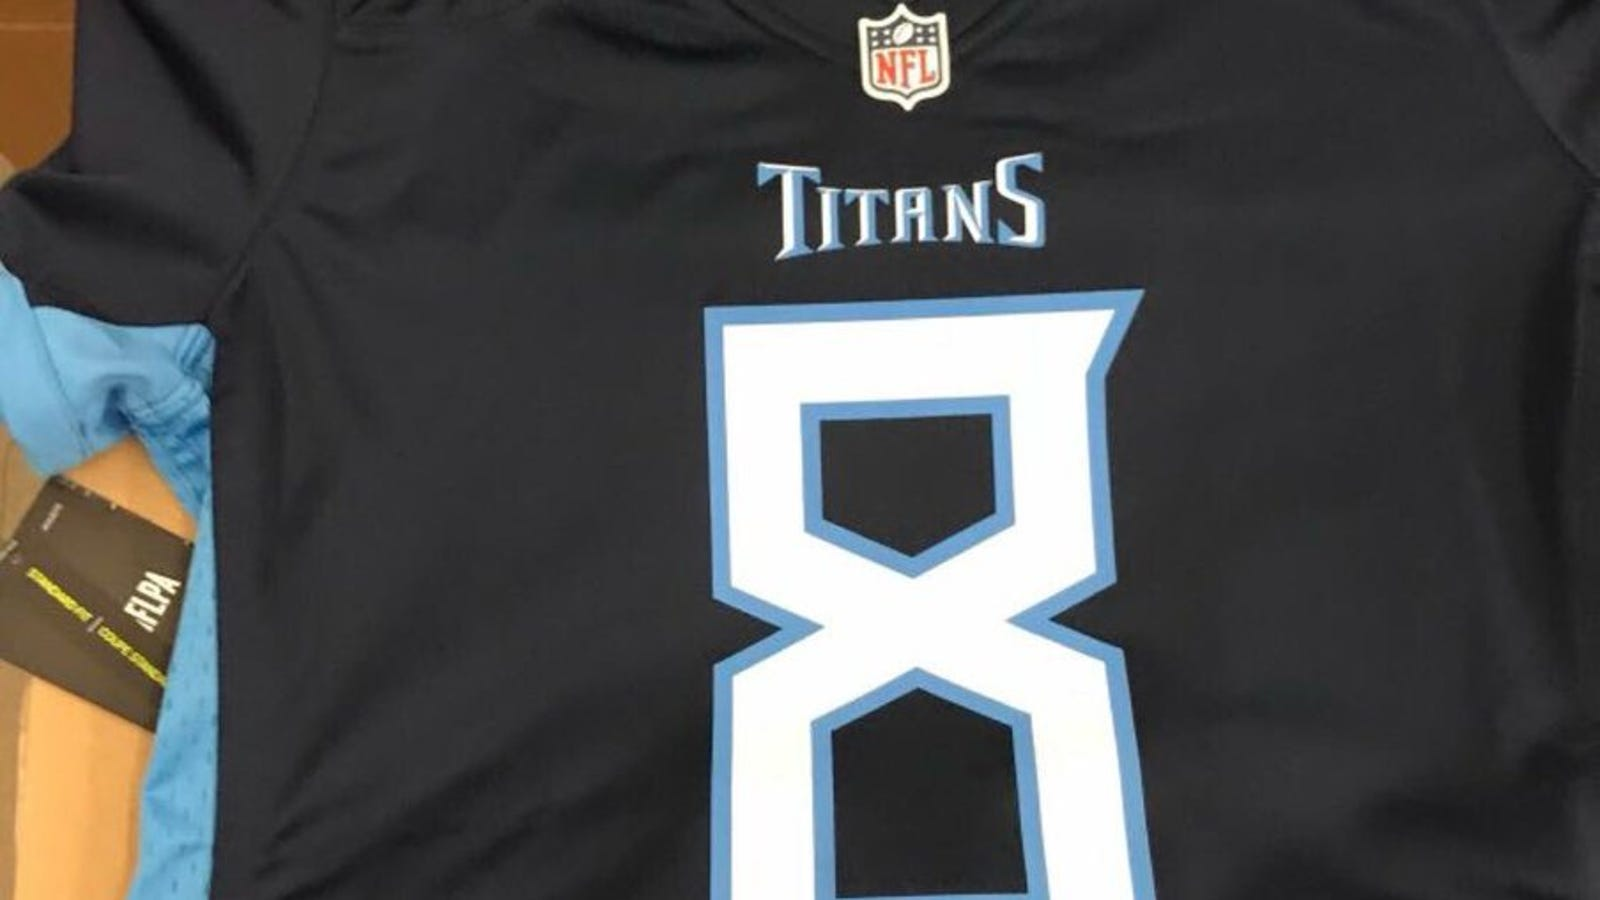 576959a11508 This Is Probably The New Titans Jersey